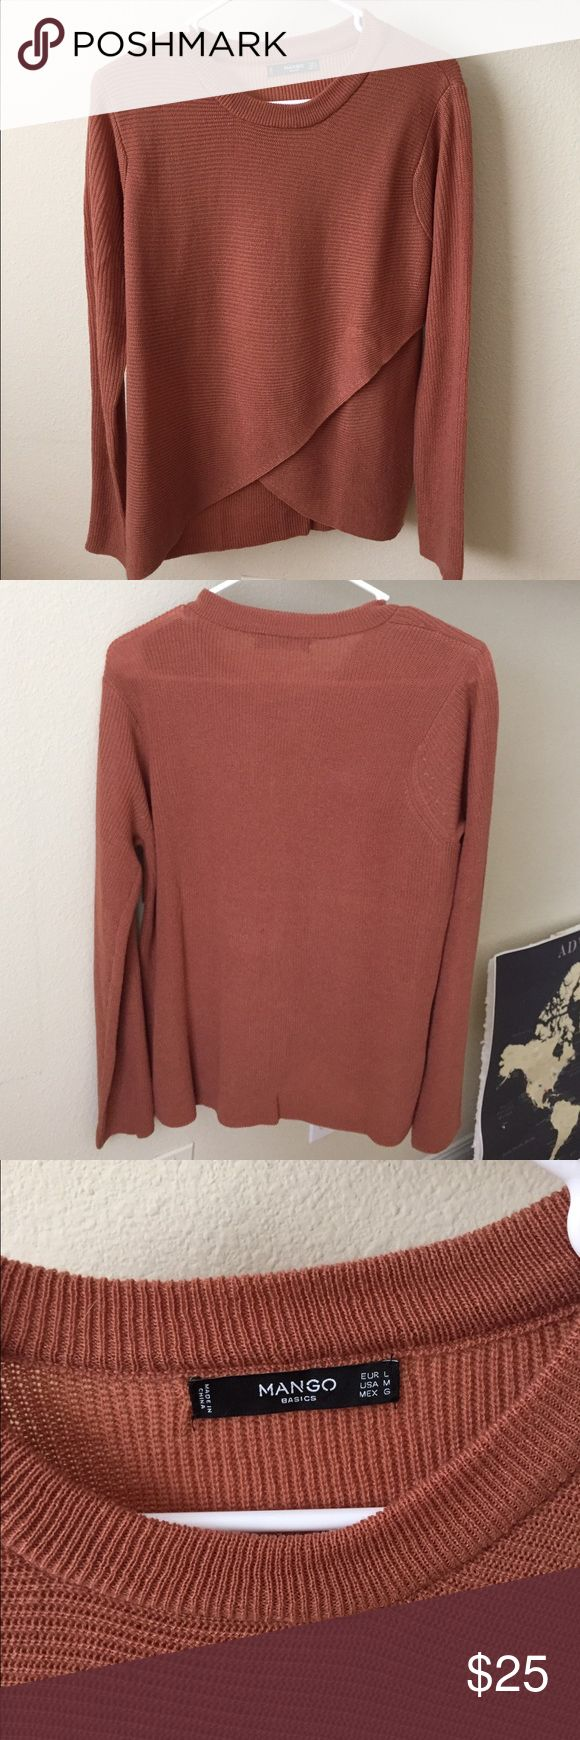 Mango Sweater NWOT.Depending on height and fit, can show belly button. Bought in Germany and never tried it on, too small for me. USA SIZE M Mango Sweaters